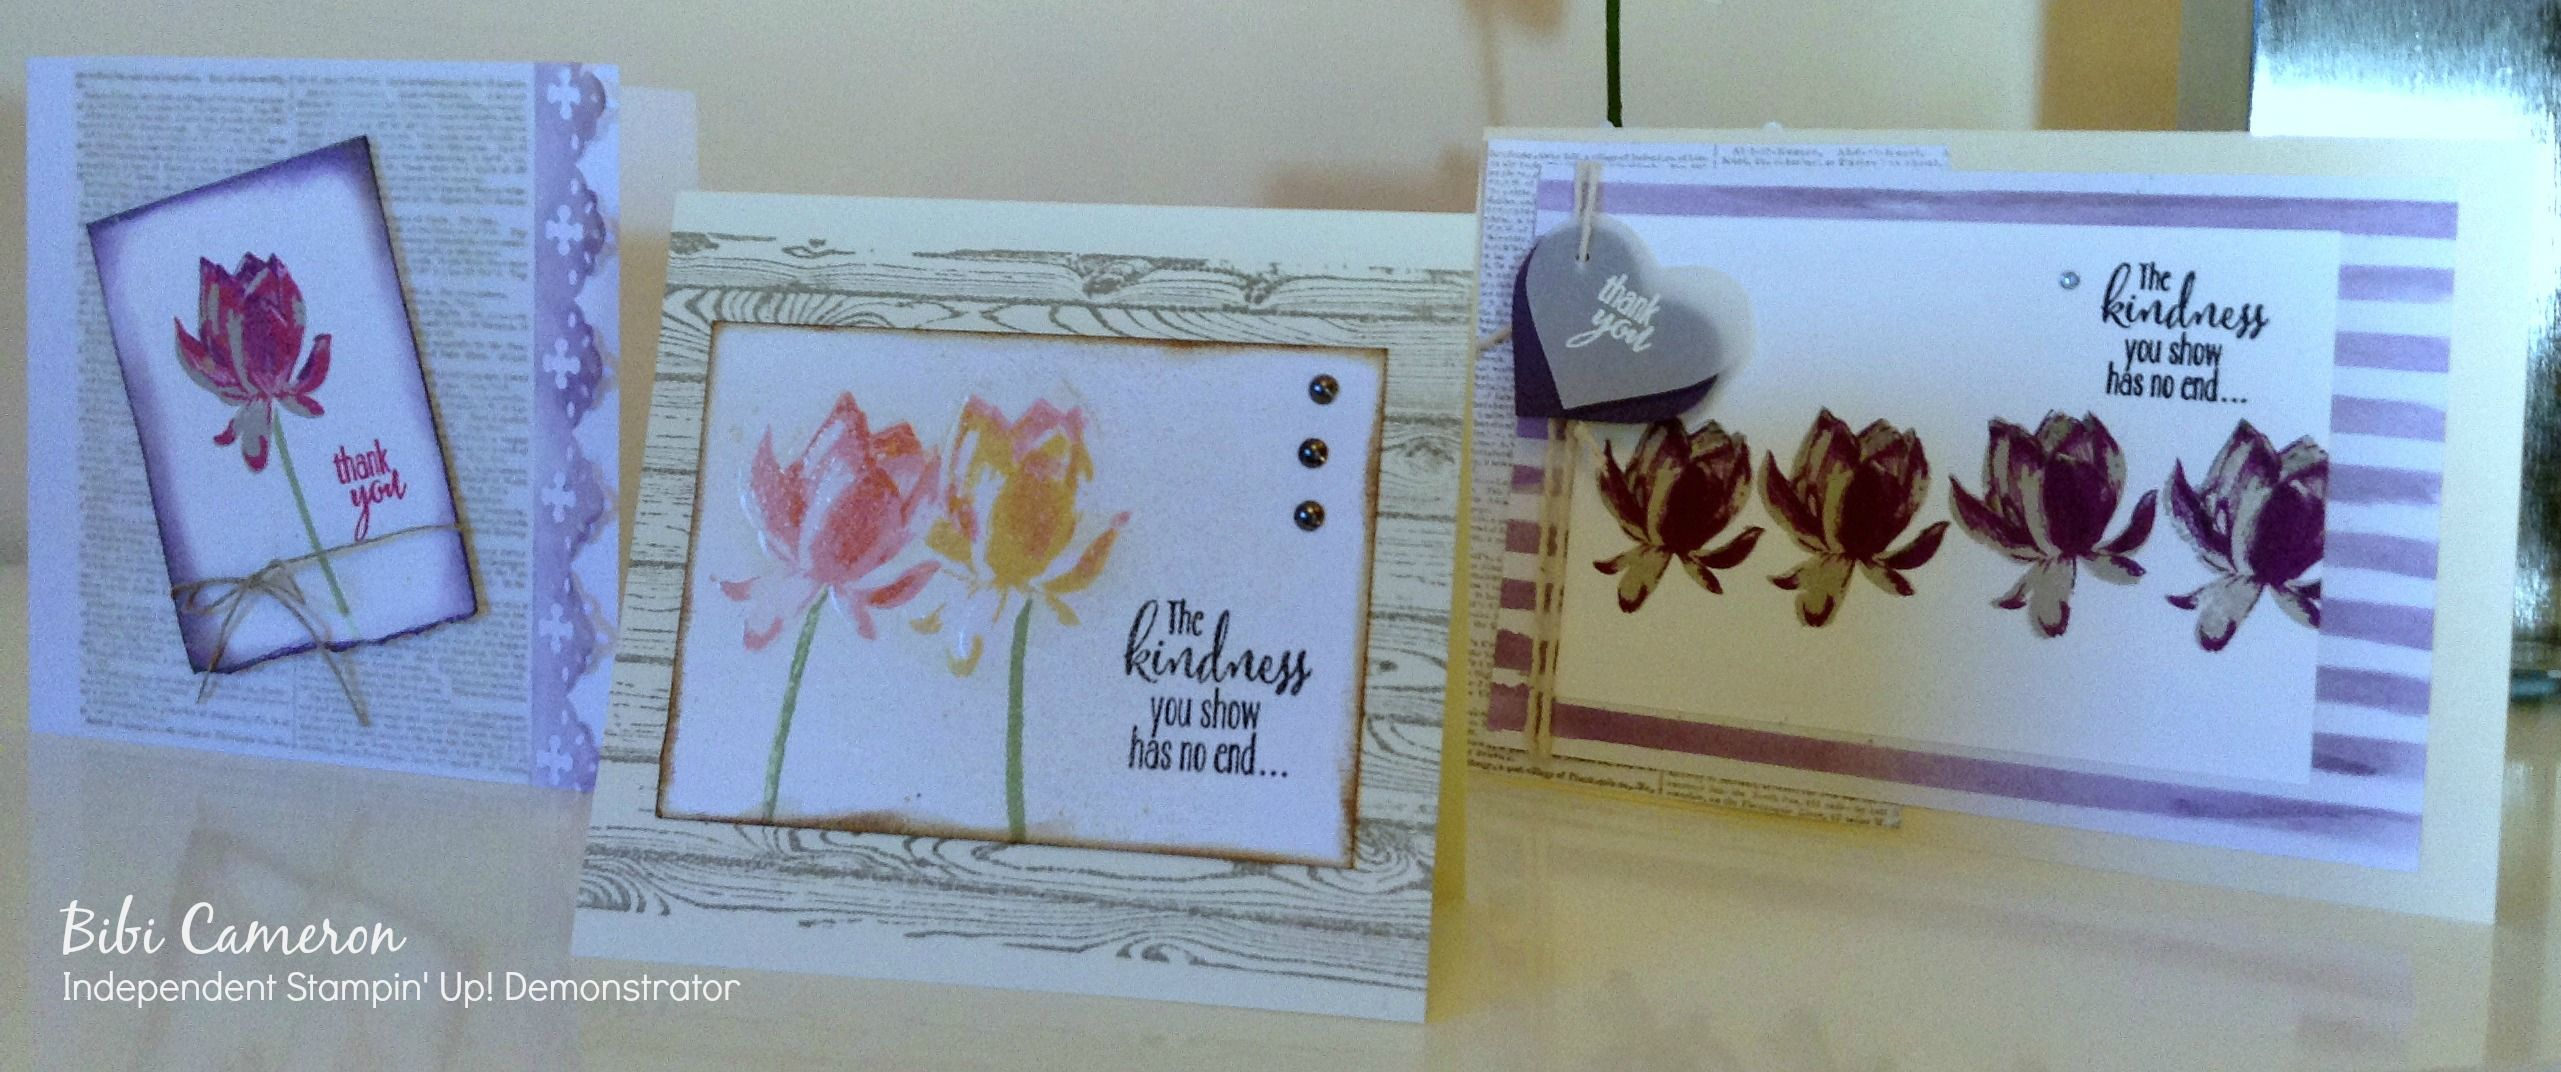 Lotus Blossom Stamp Set By Stampin Up To Order Online 247 Or See